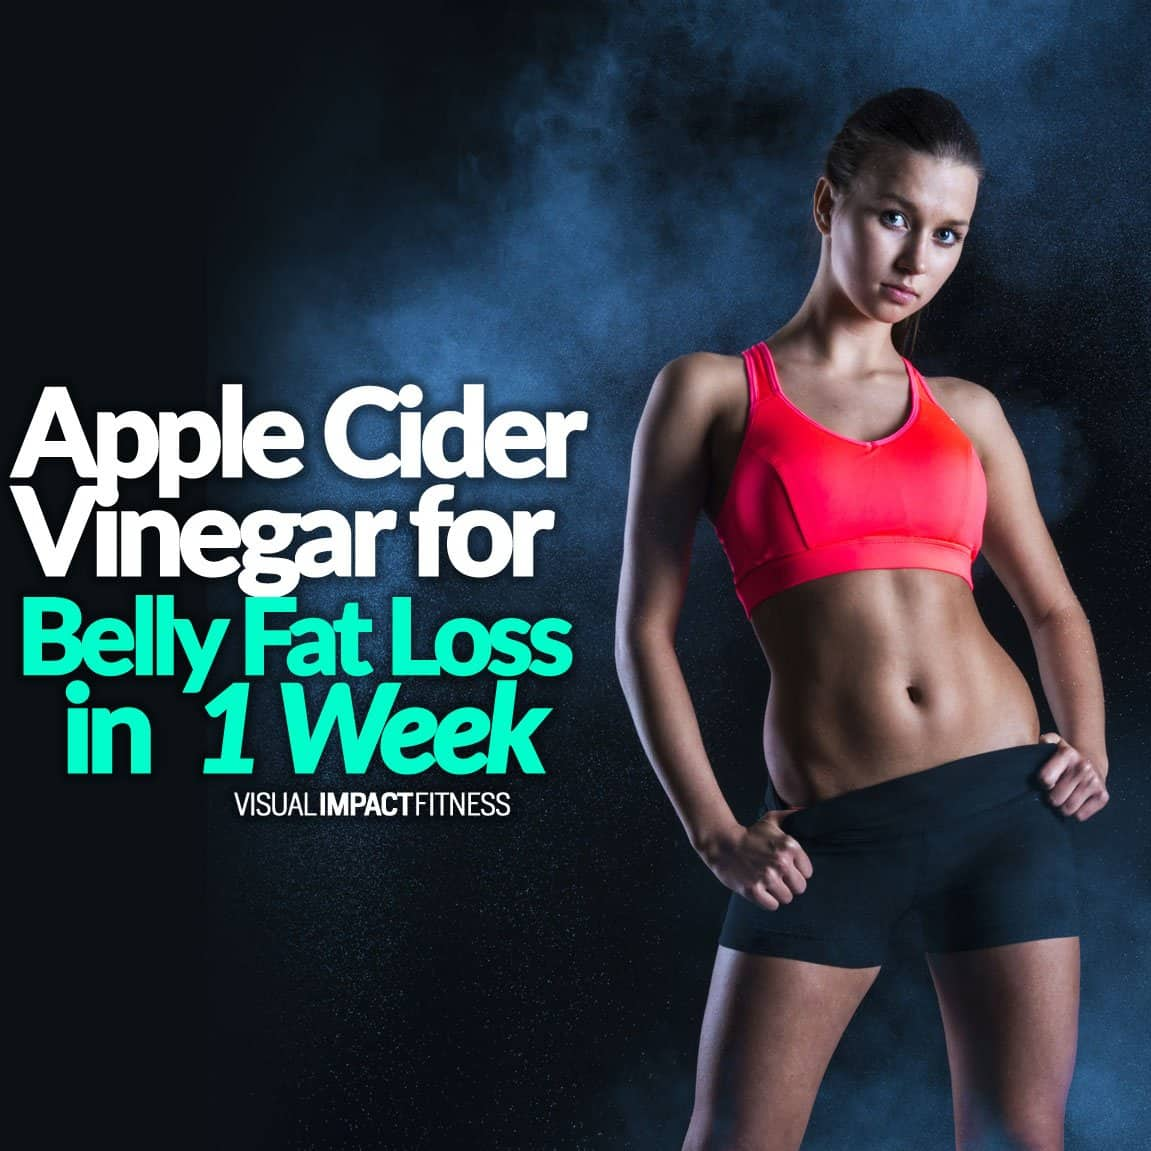 Apple Cider Vinegar For Belly Fat Loss In 1 Week